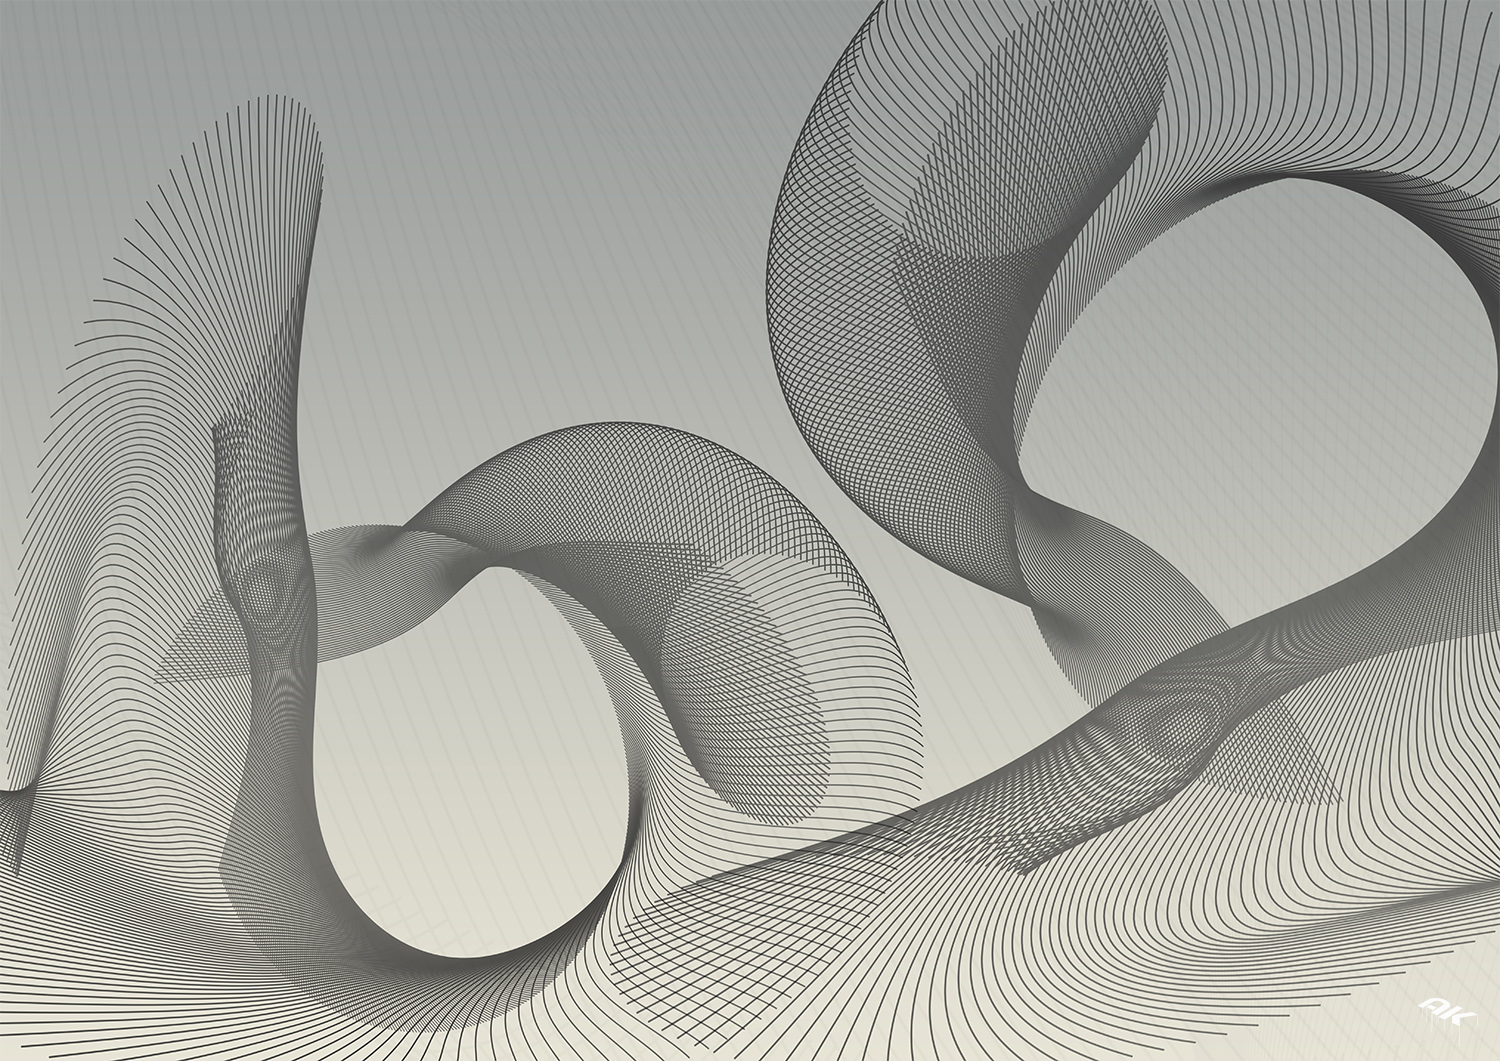 wireframes-in-motion-4-copyright-andrew-knutt